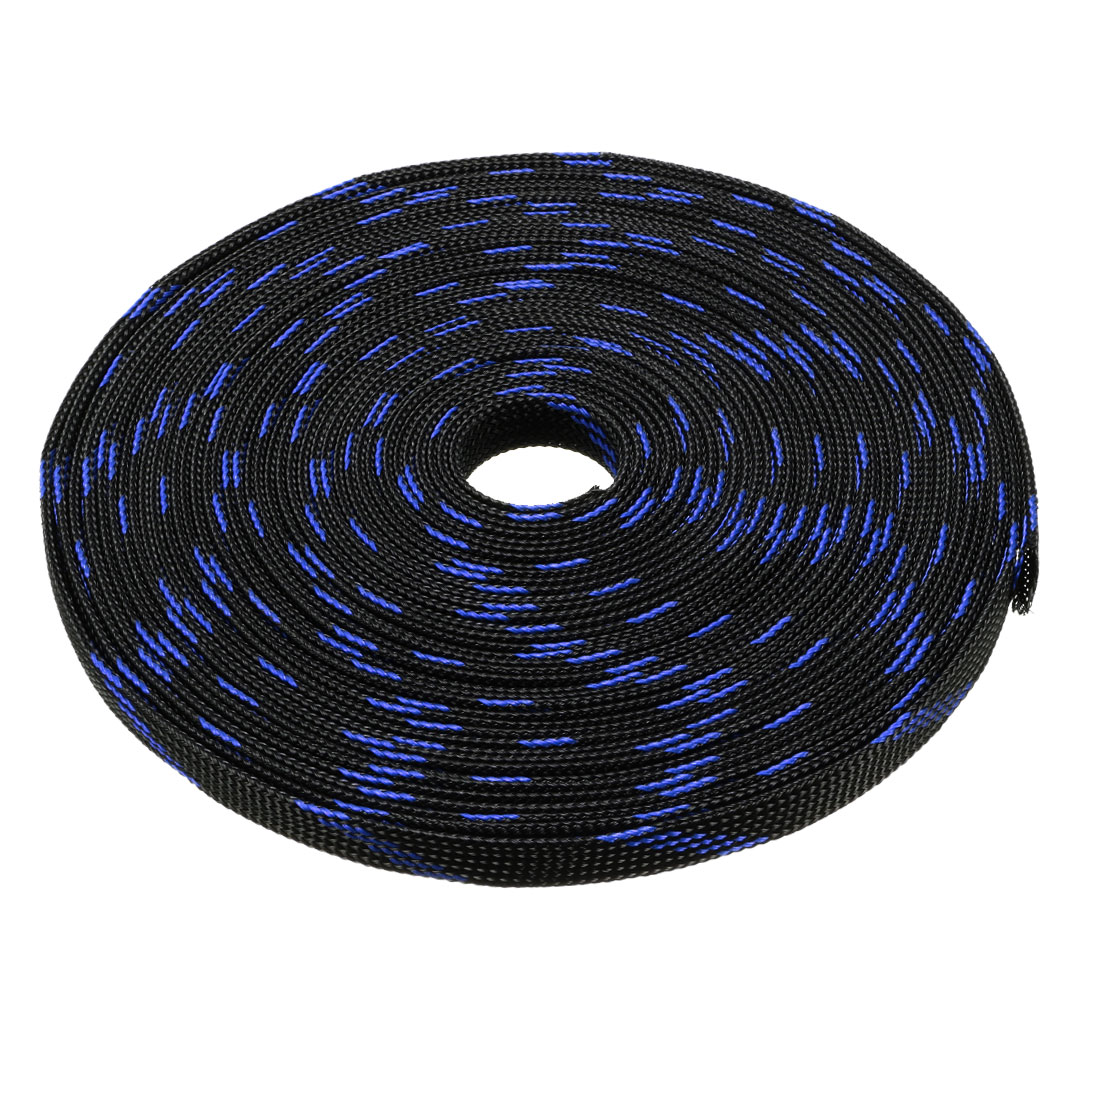 12mm Dia Tight Braided PET Expandable Sleeving Cable Wrap Sheath Black Blue 32ft